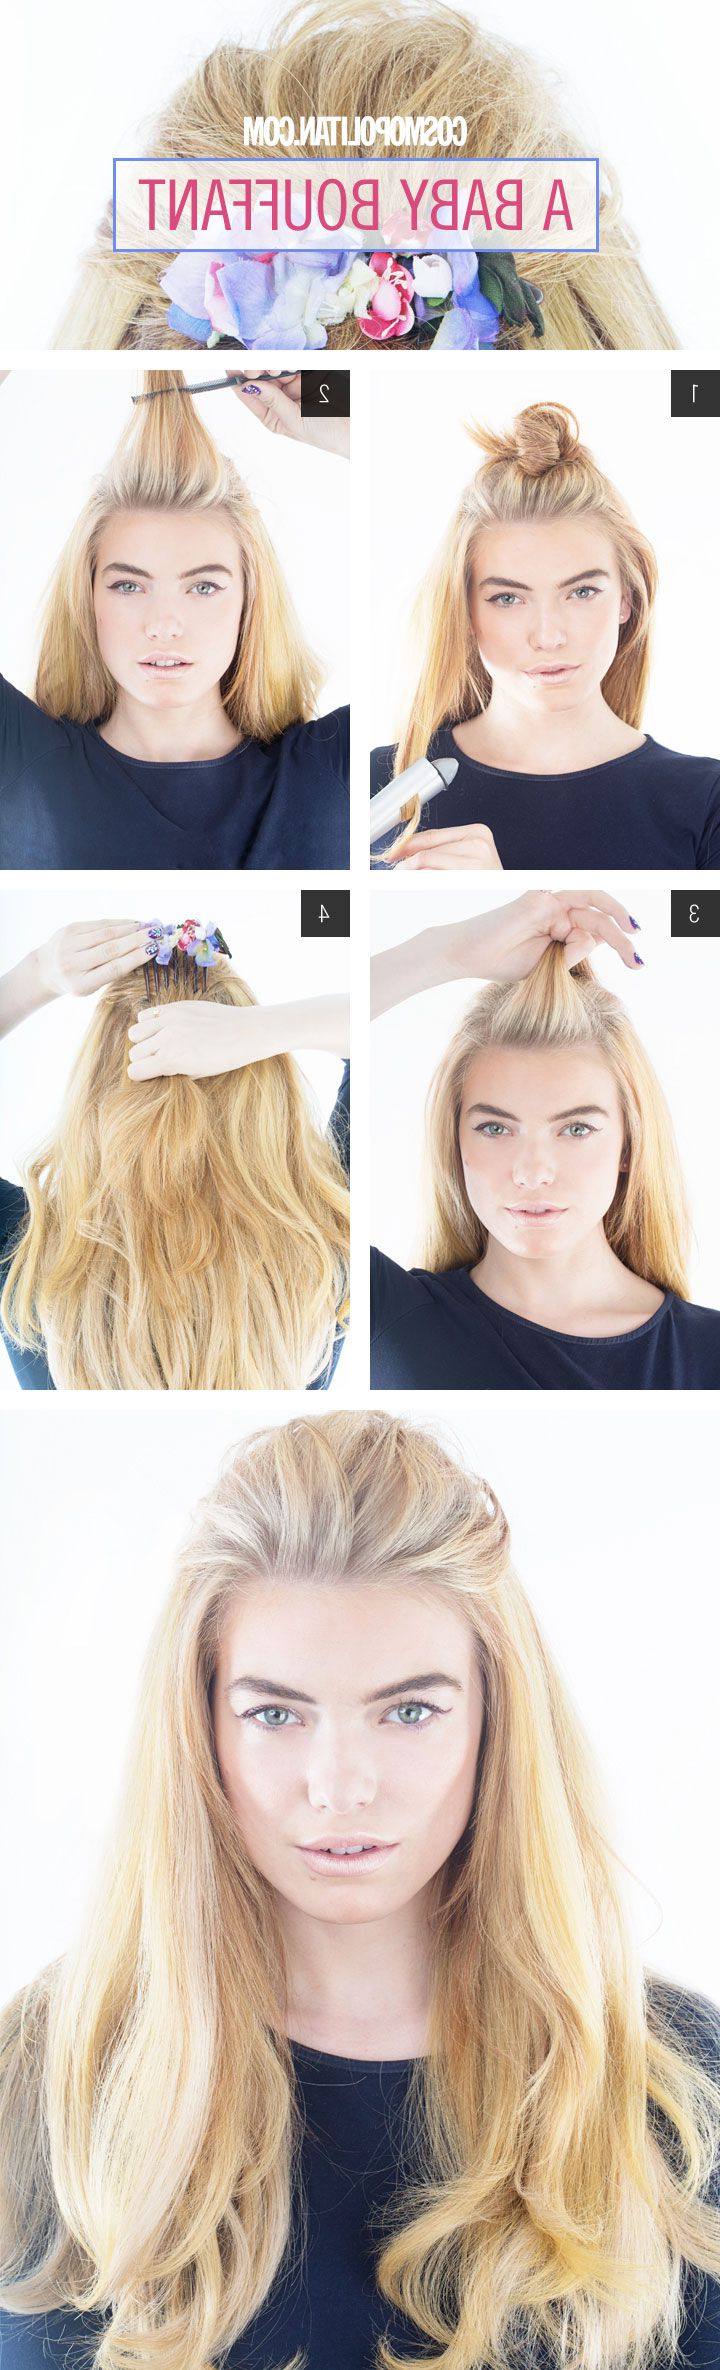 10 Hair Tutorials To Try: How To Teased Hair – Pretty Designs For Preferred Teased Medium Hairstyles (View 5 of 20)